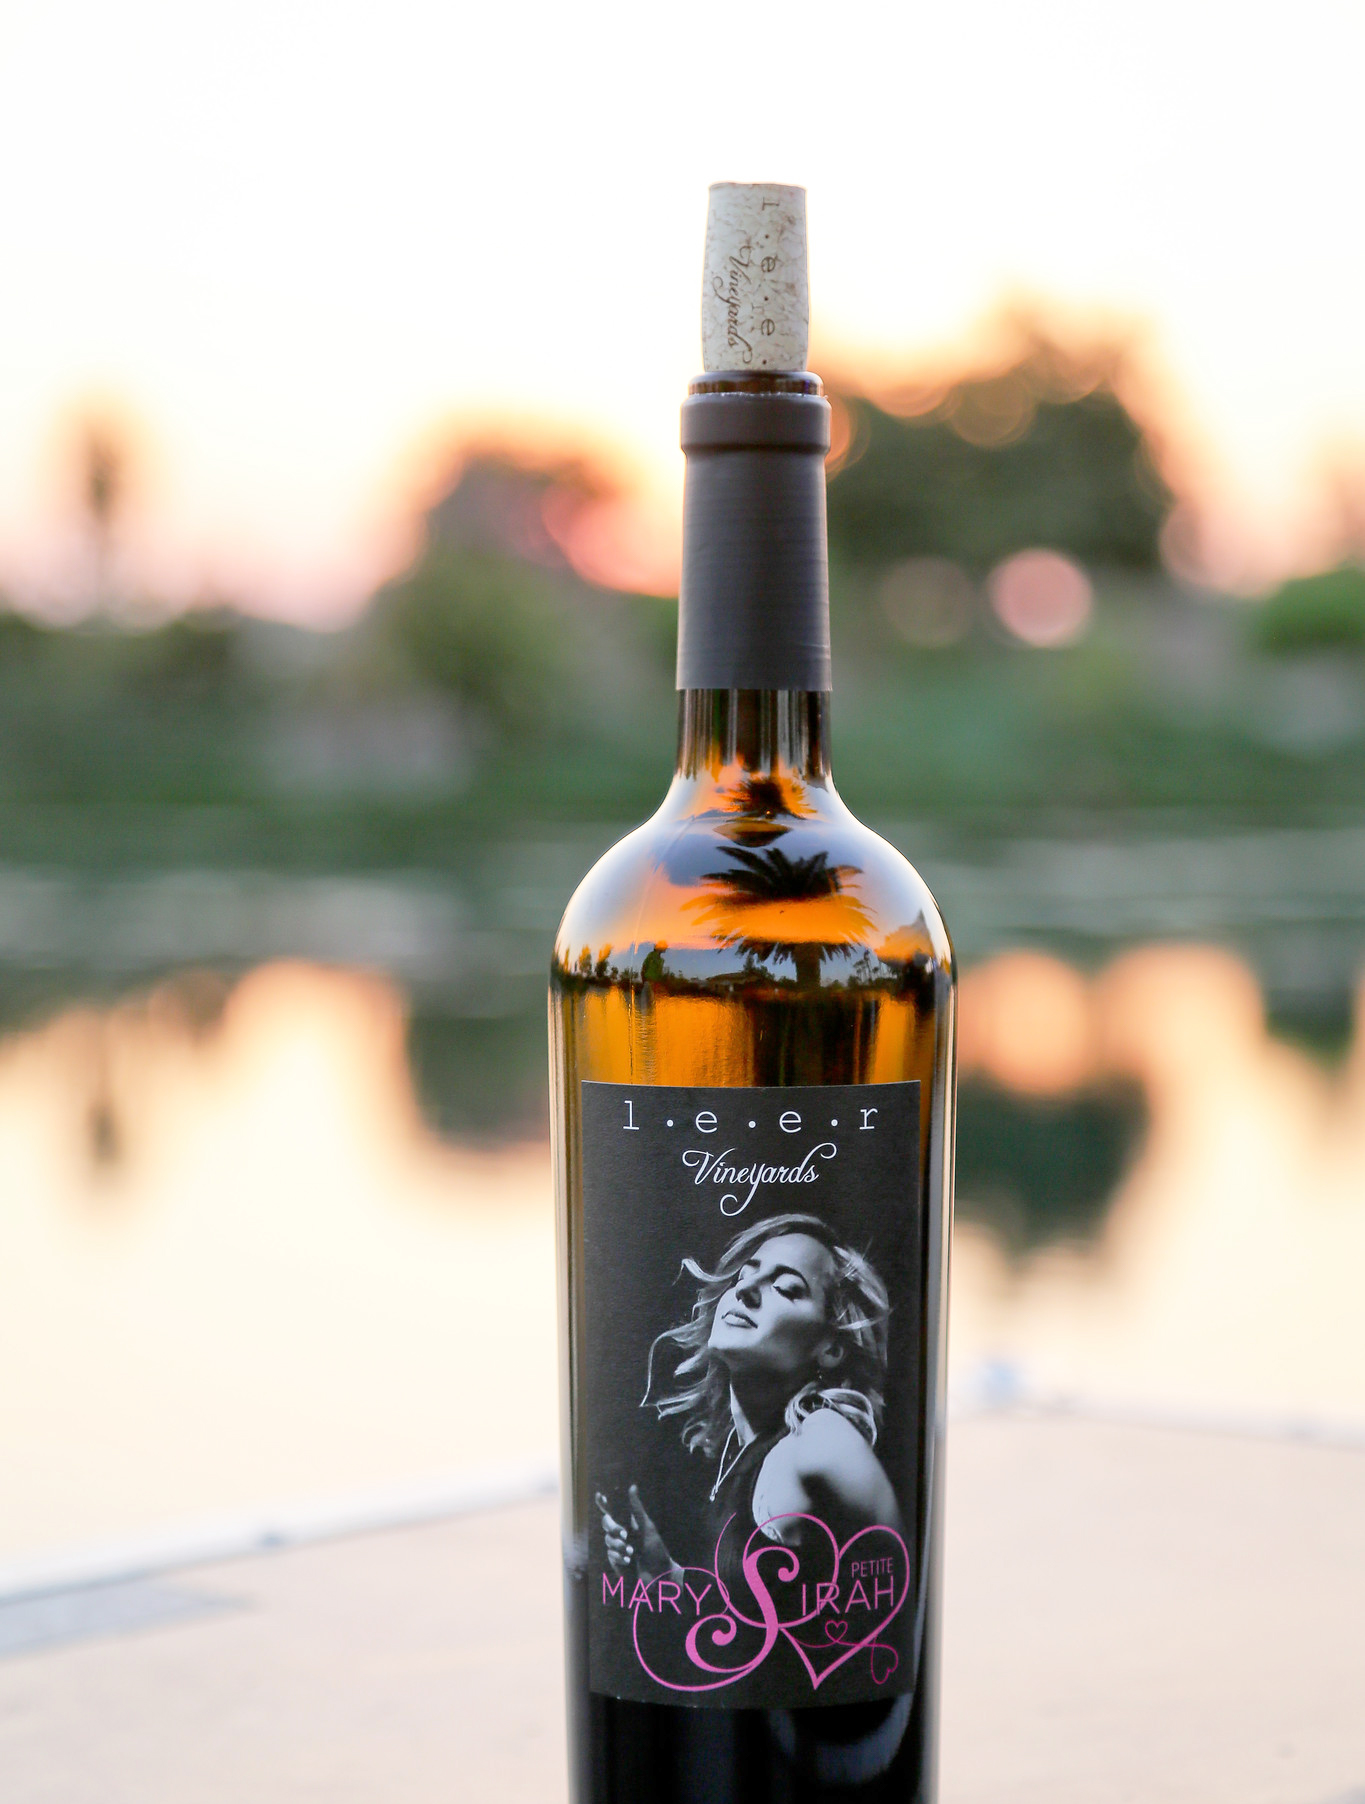 A bottle of Mary Petit Sirah wine